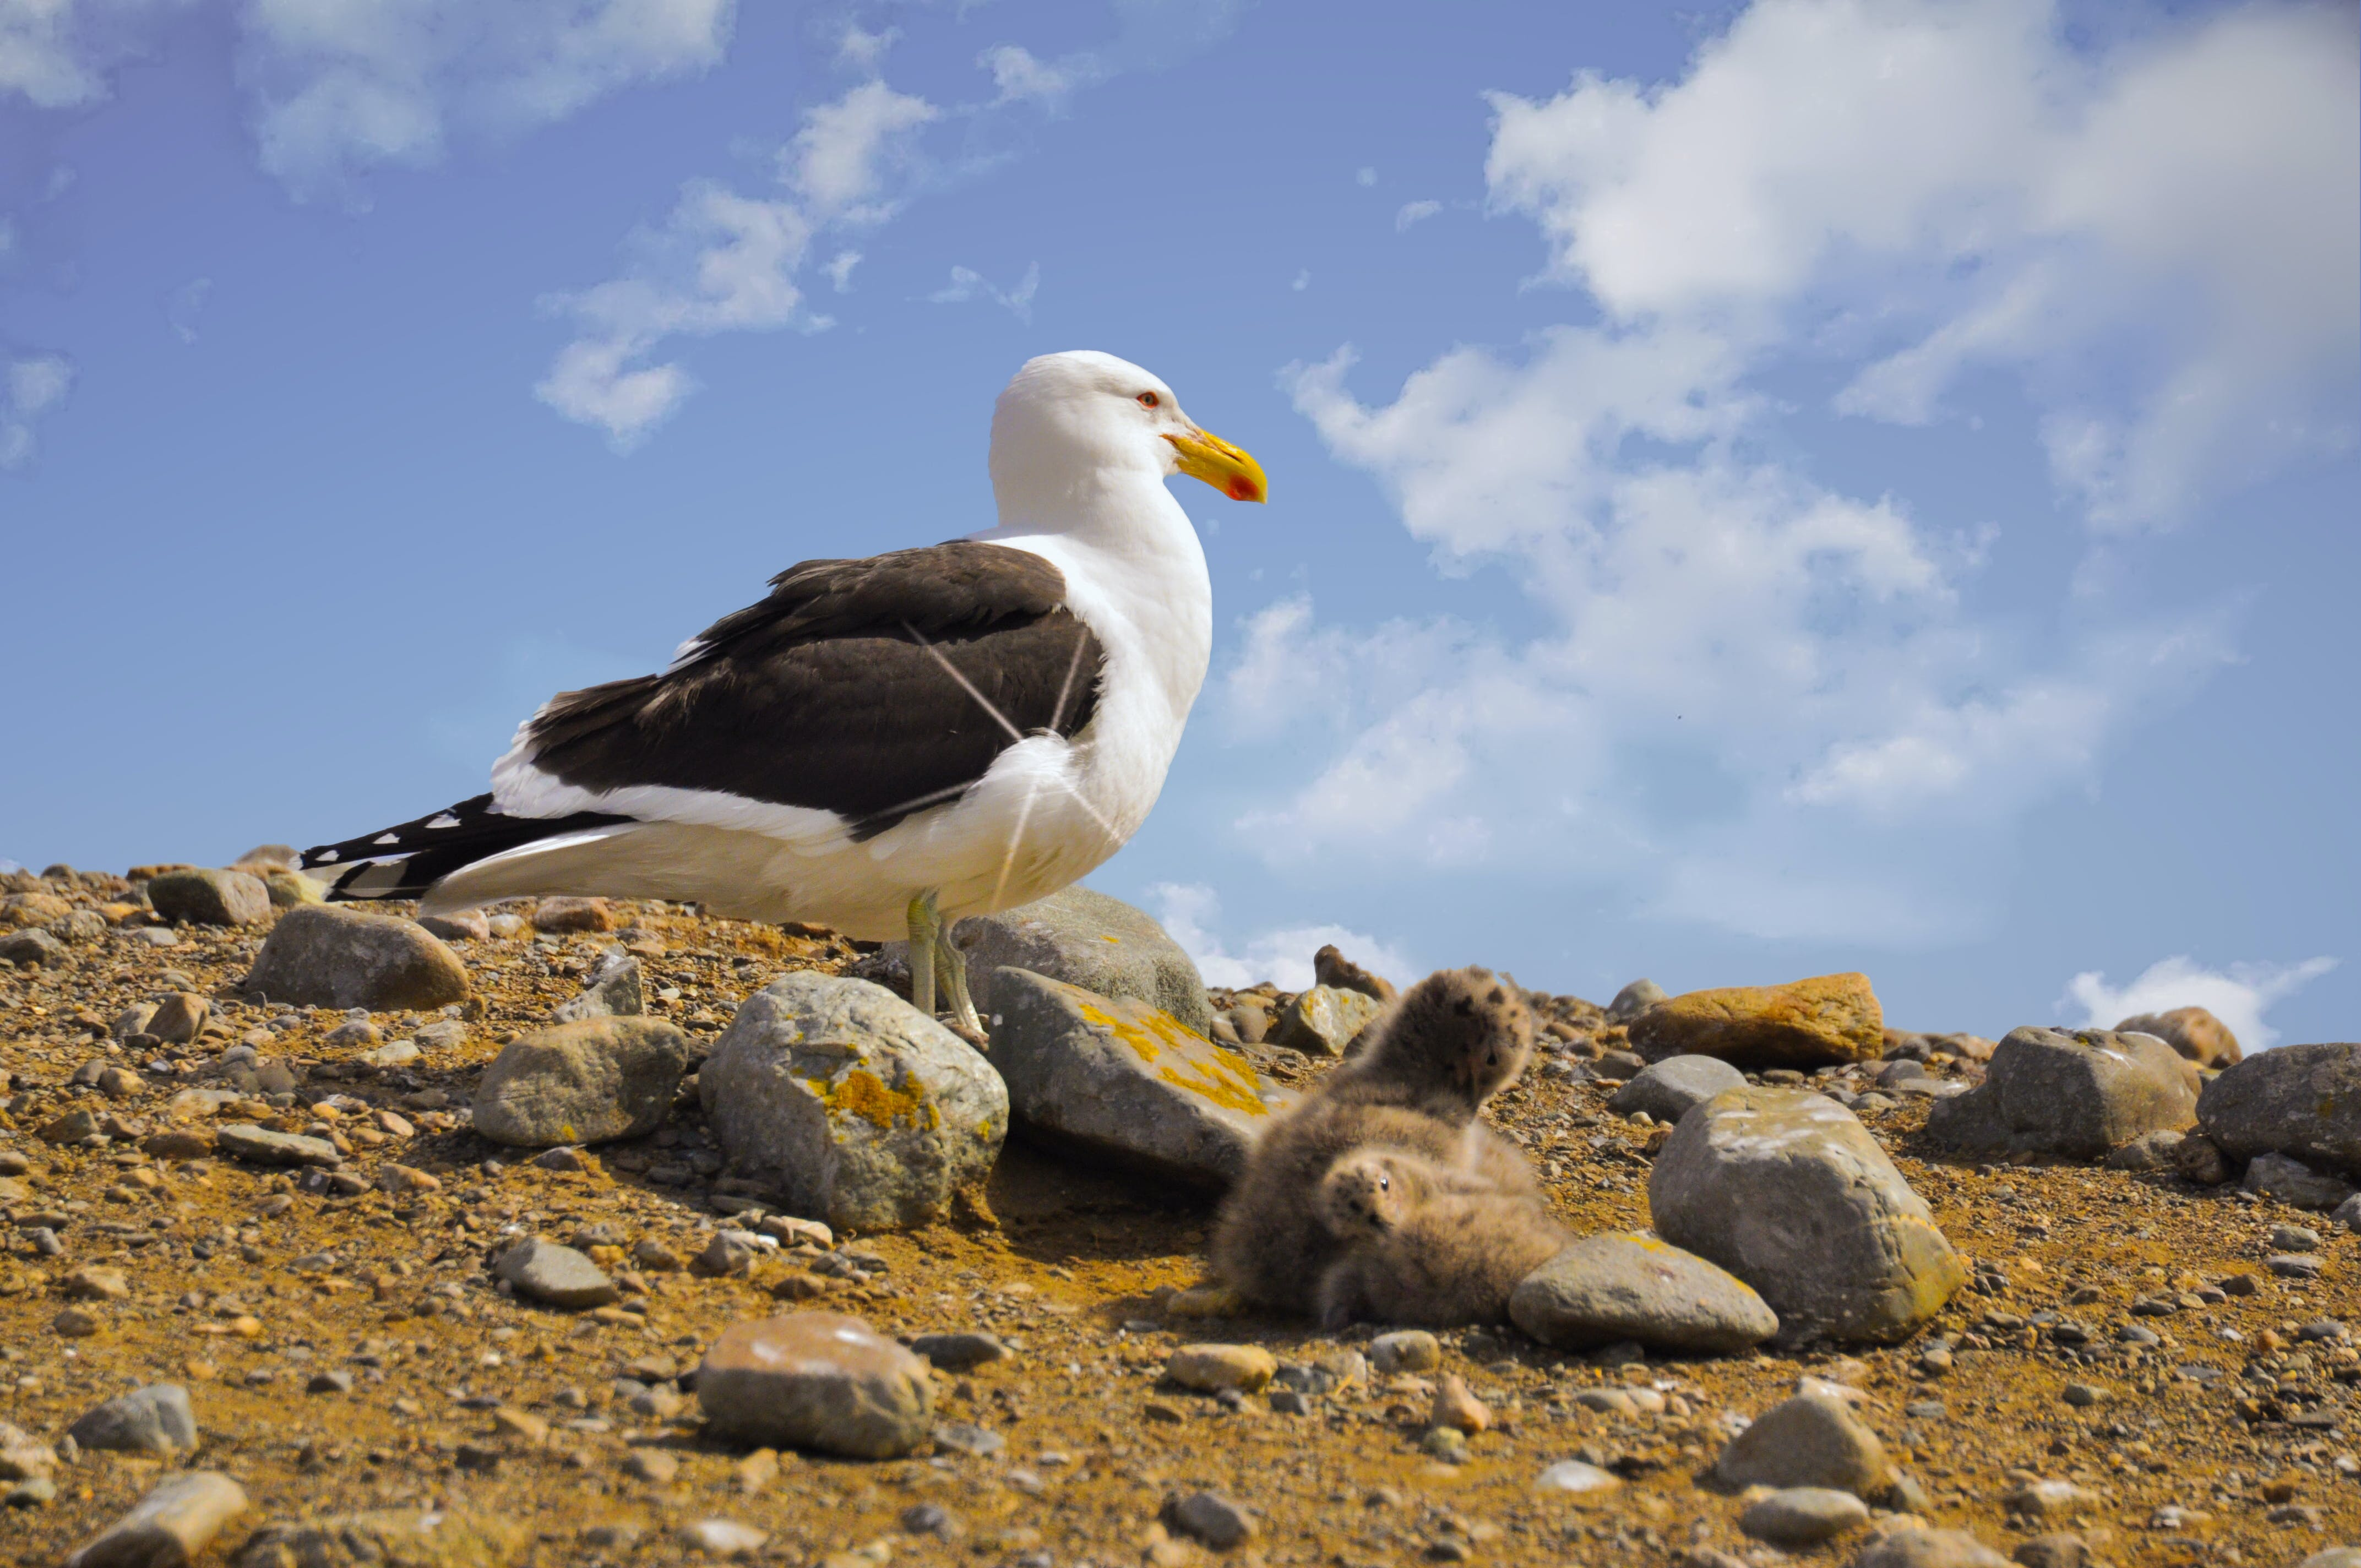 Free stock photo of seagulls, seagull, baby, mother and baby